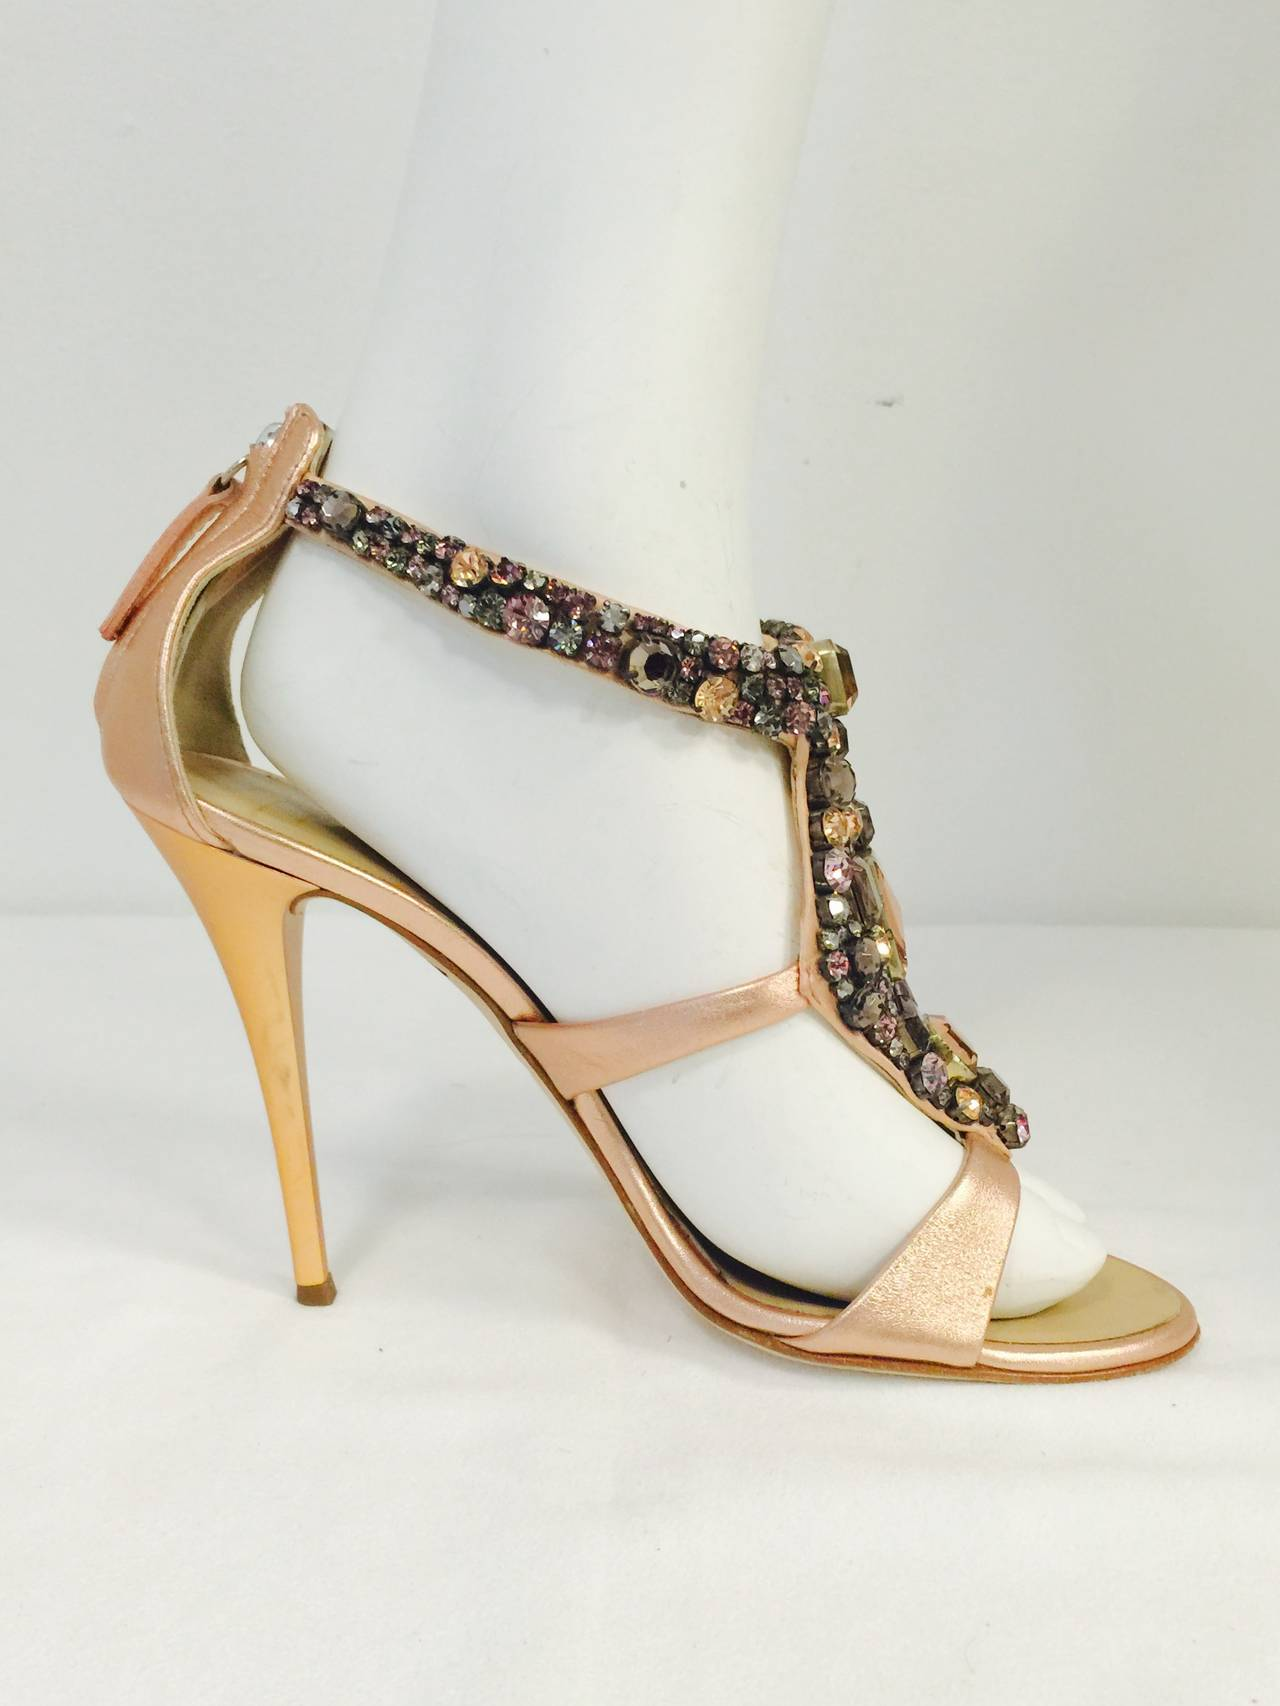 532ee64882ff Giuseppe Zanotti High Heel Sandals are Crown Jewels for the feet! Features  exotic rose gold